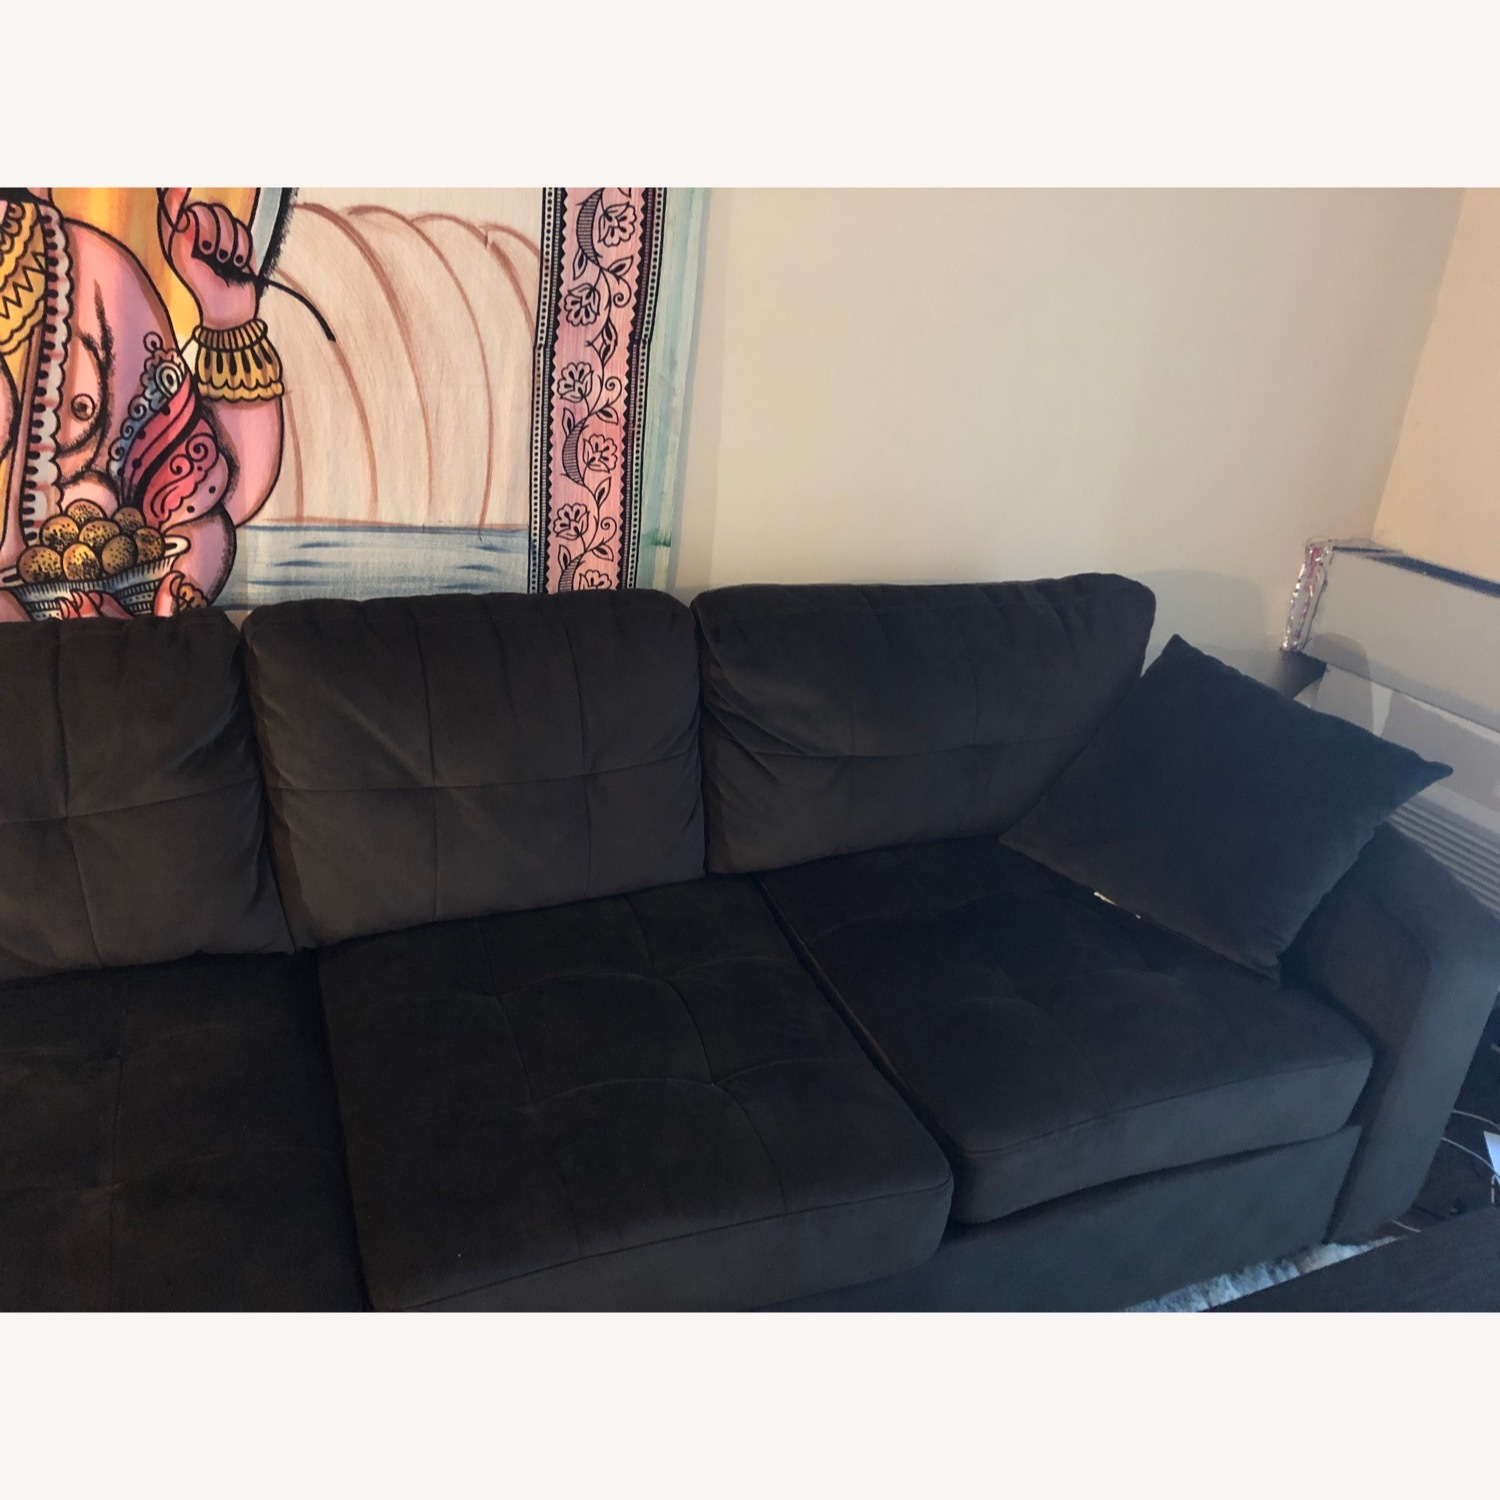 Wayfair 2 Piece Sectional Couch - image-4